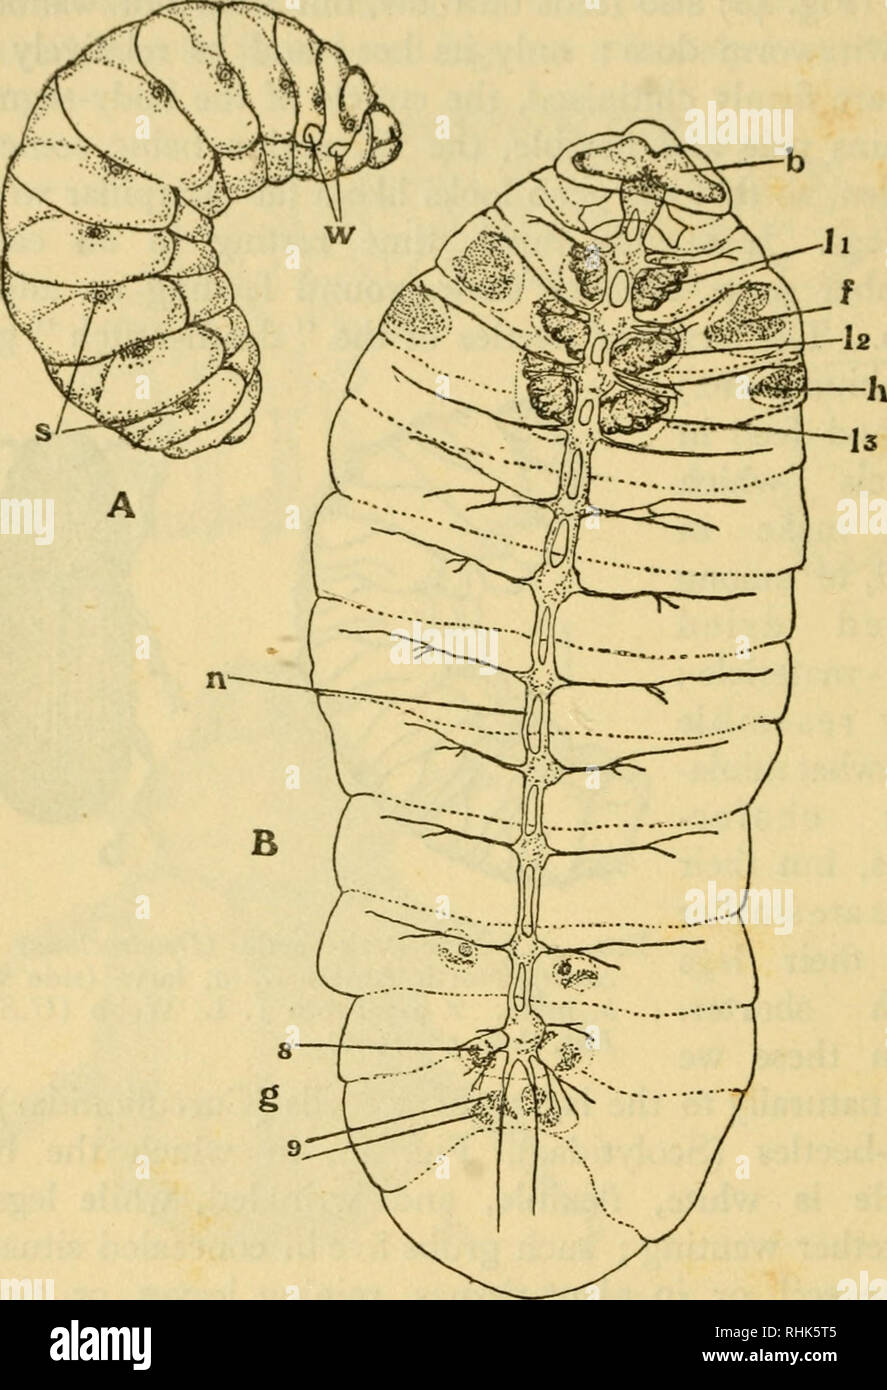 hight resolution of insects biology i8o the biology of insects among the two winged flies diptera all the larvae are destitute of true legs and in the house fly and